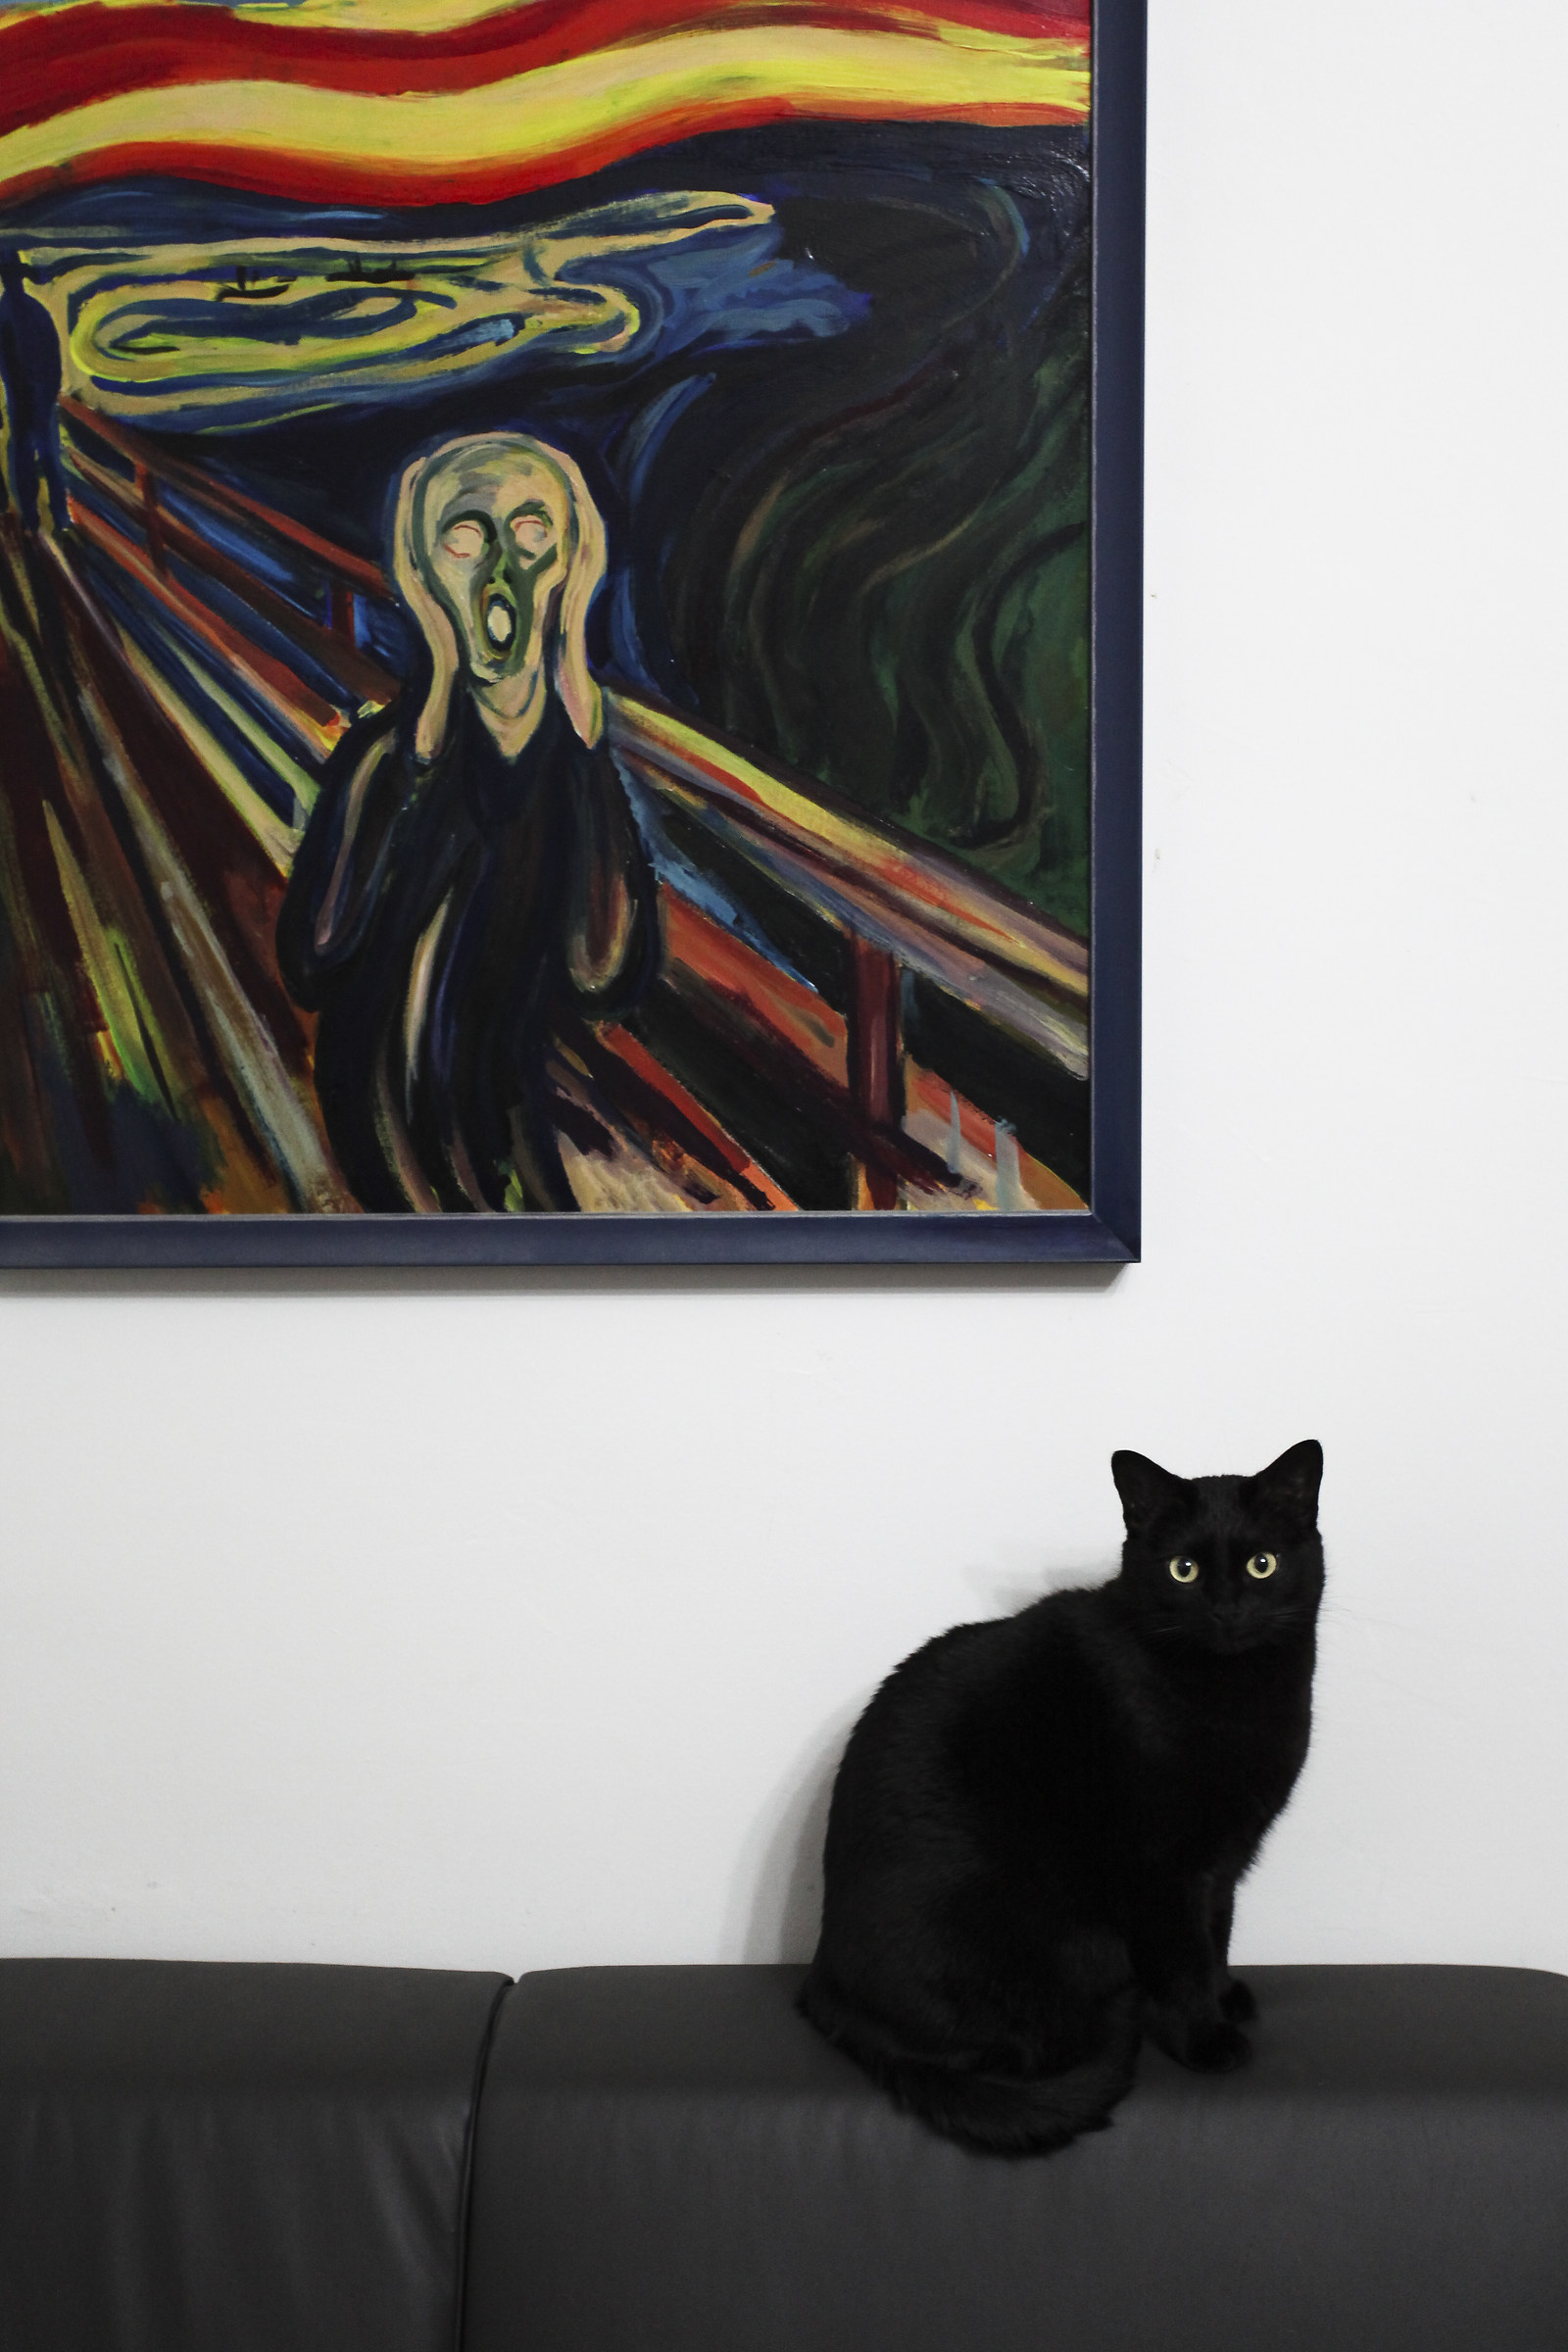 The scream of Morgana...